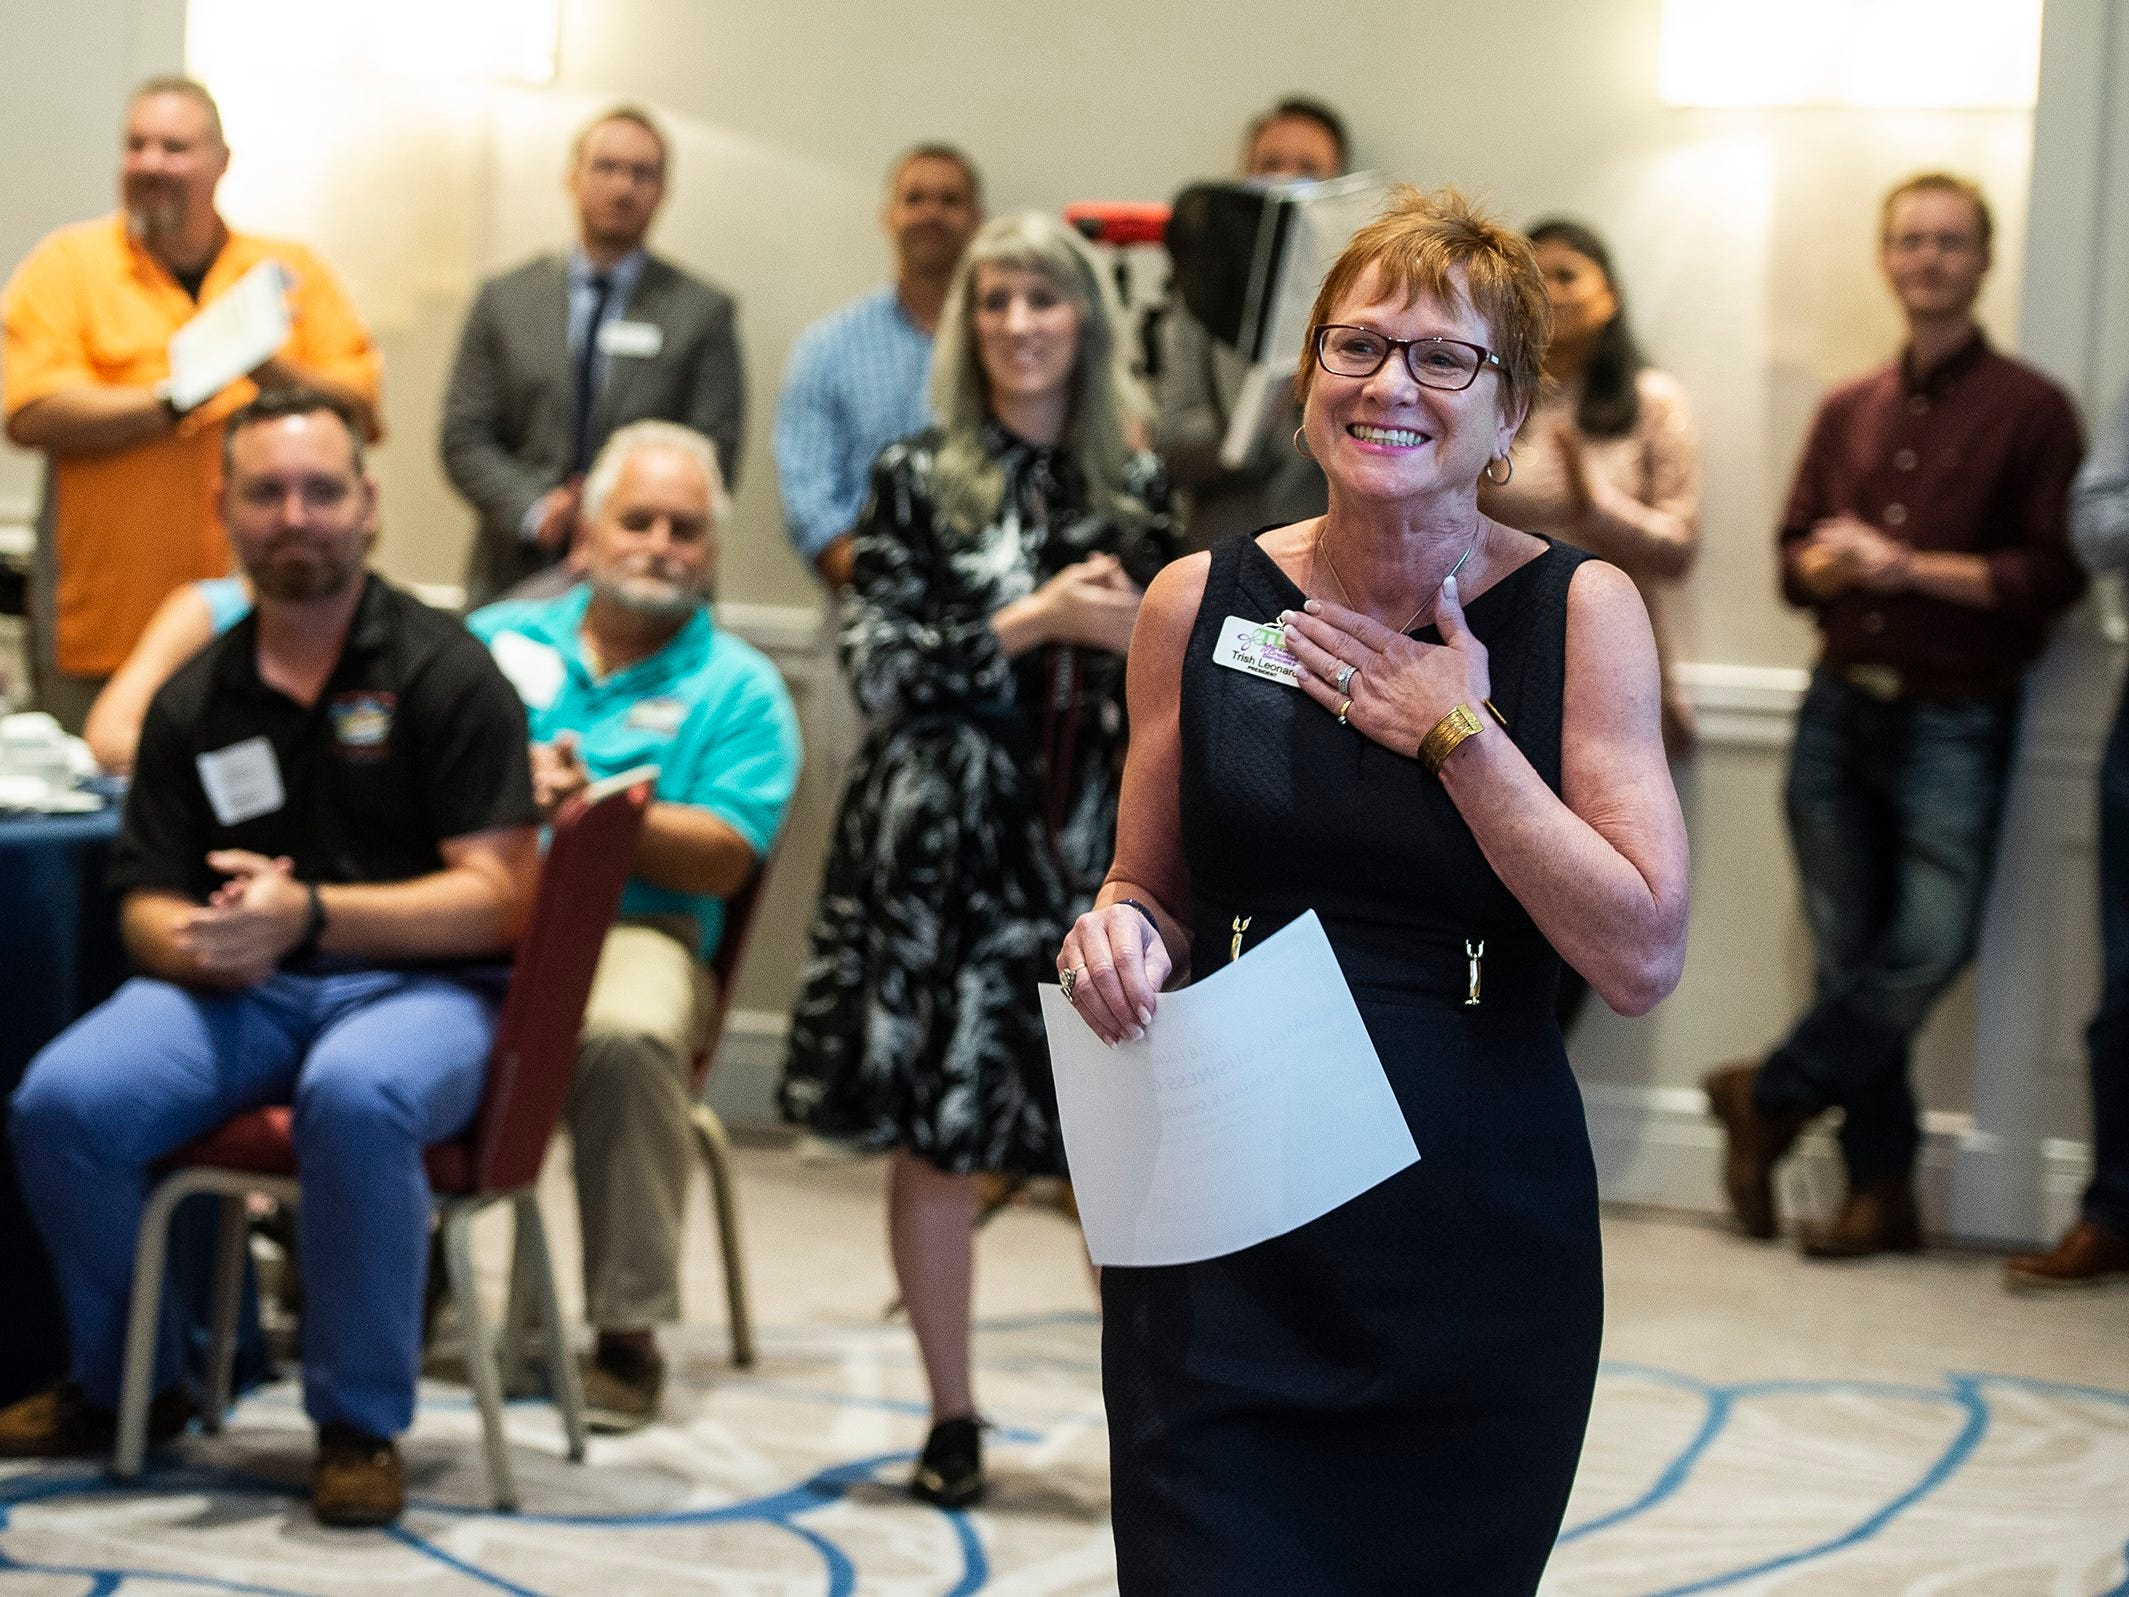 Trish Leonard reacts to getting the small business of the year award during the Bonita Springs Area Chamber of Commerce Awards Luncheon at the Hyatt Regency Coconut Point in Estero on Thursday, Aug. 30, 2018.